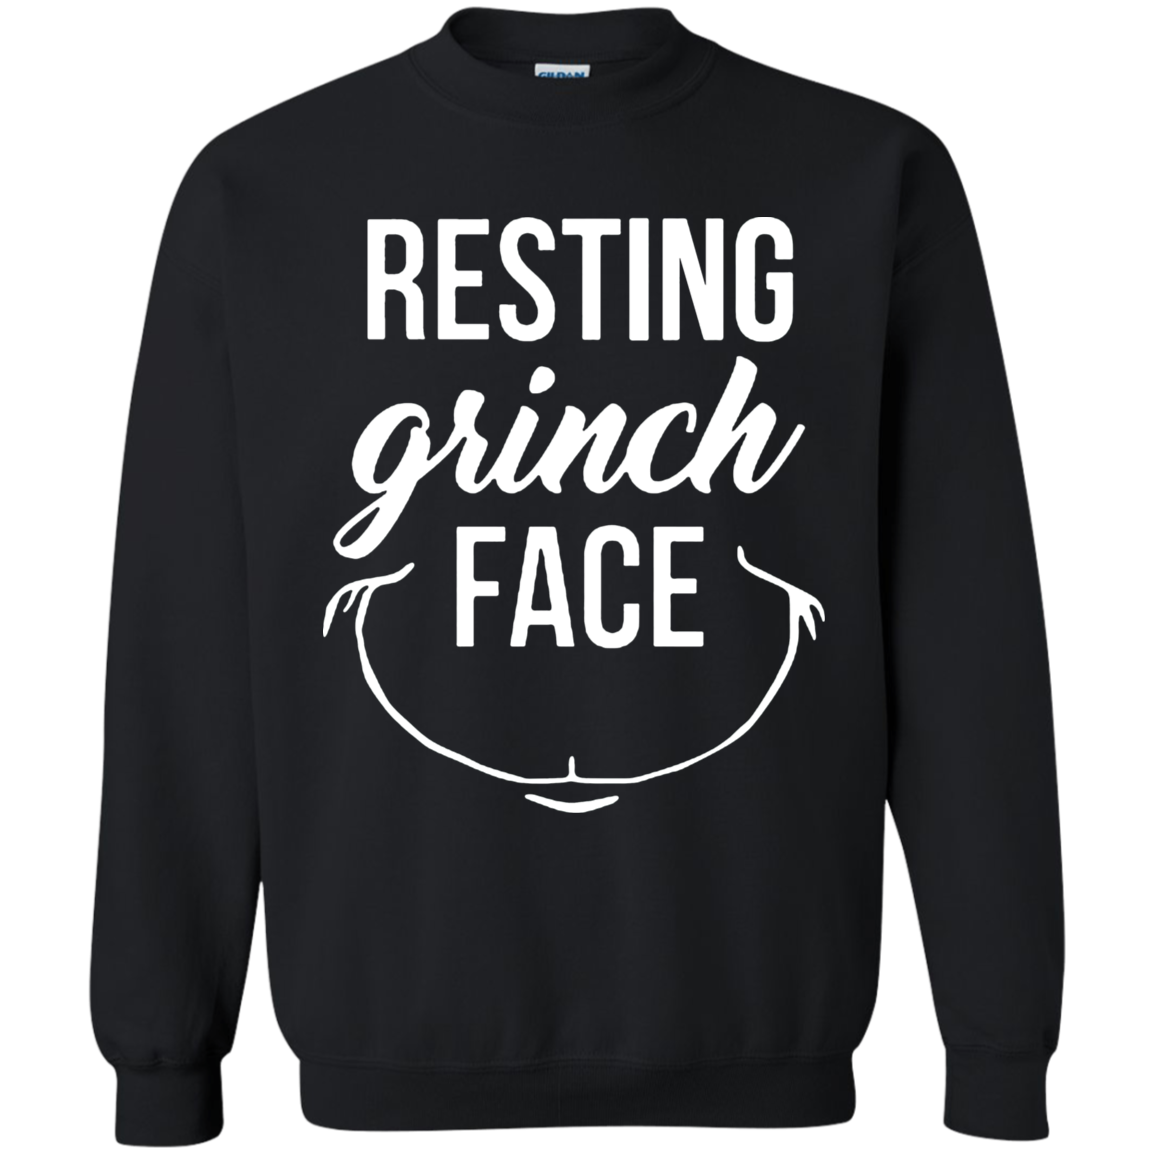 Resting Grinch Face Sweatshirt